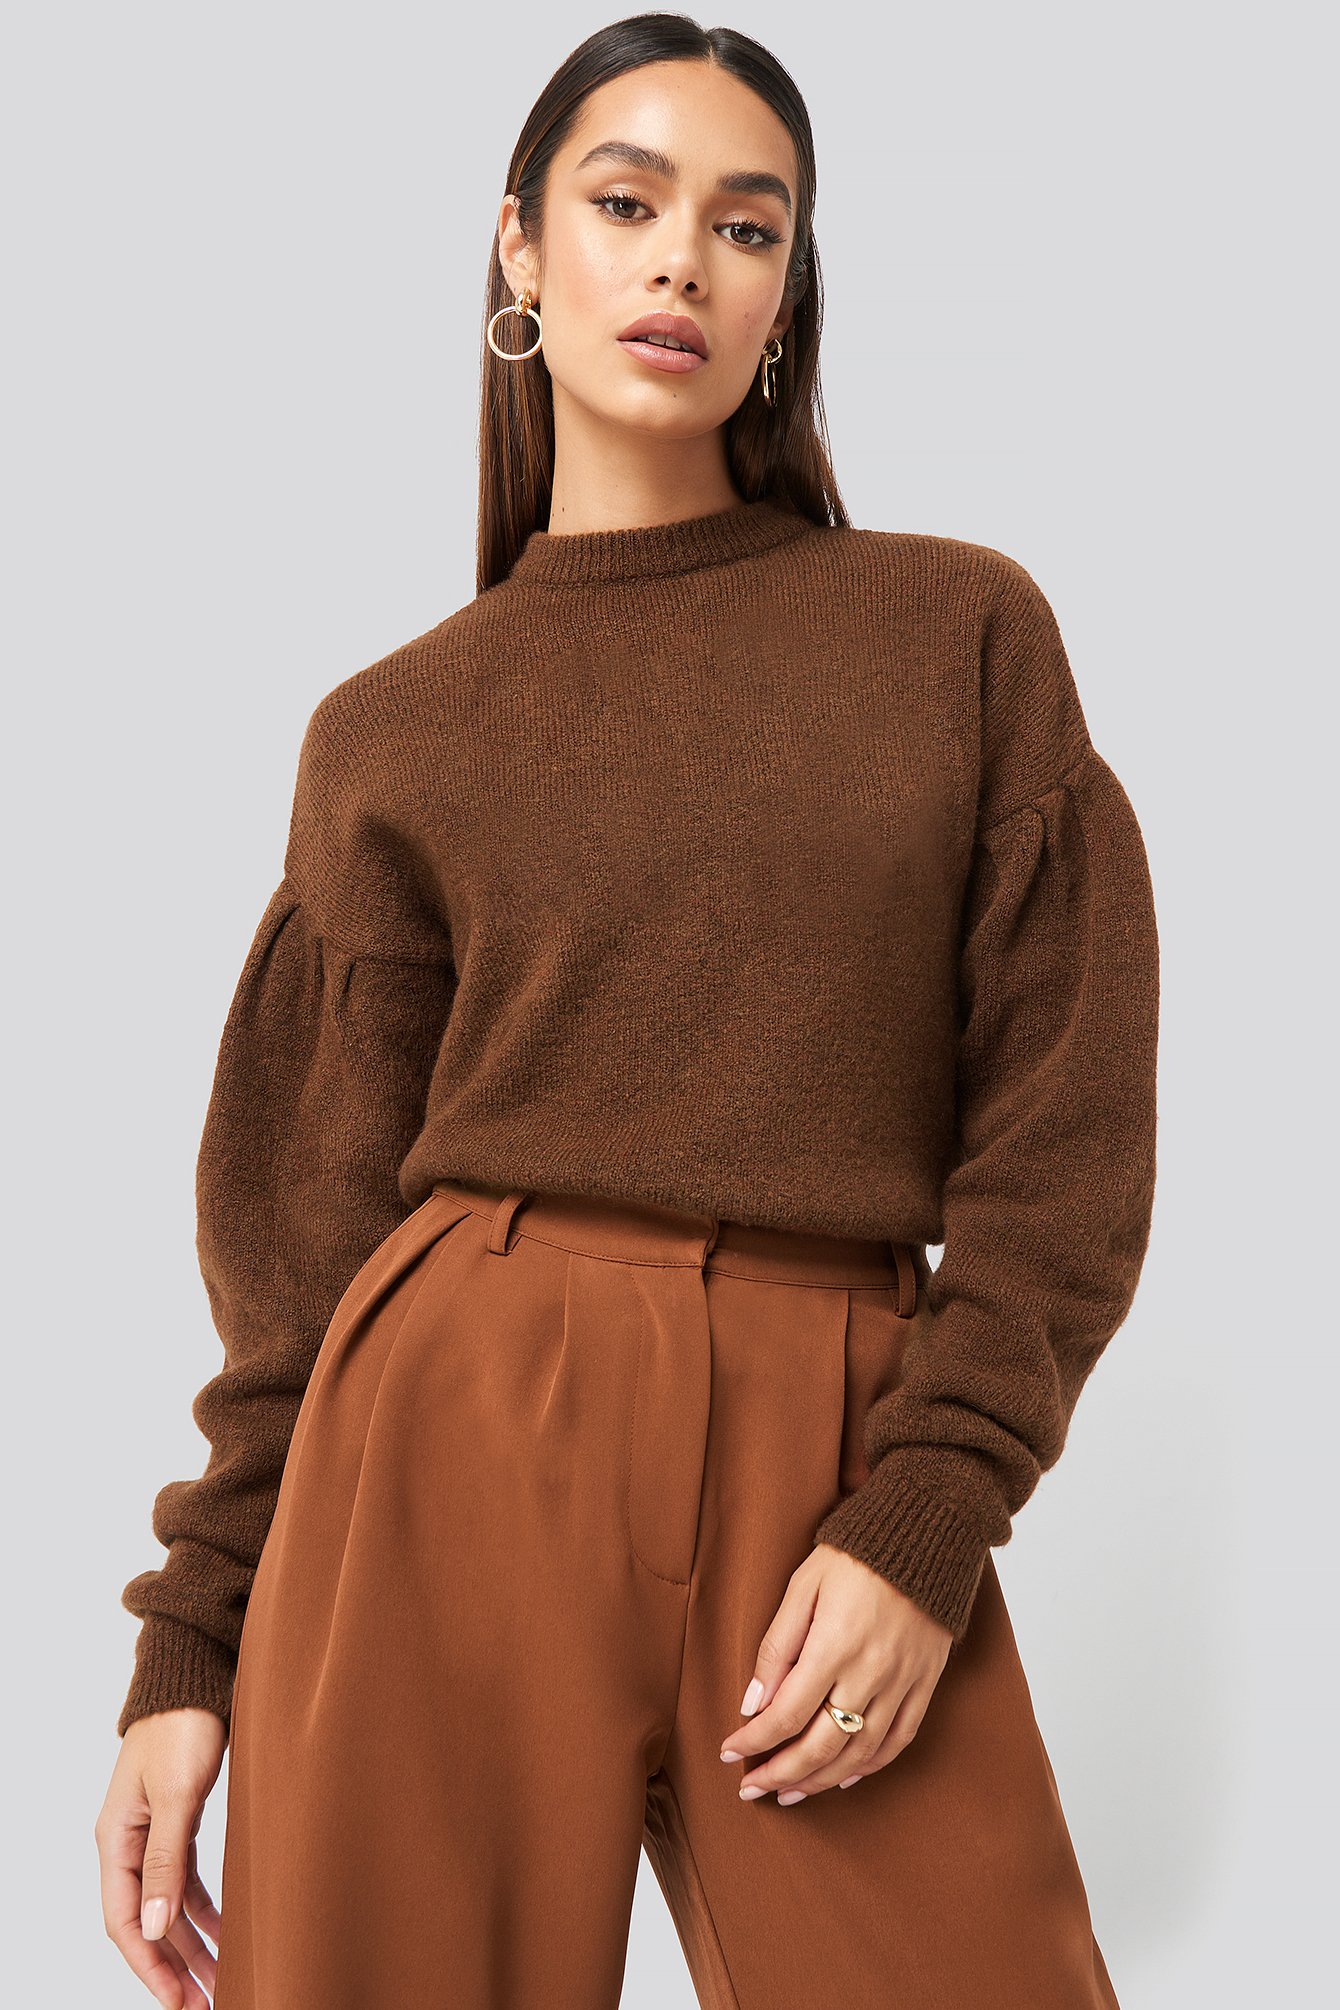 hanna weig x na-kd -  Drop Shoulder Pullover - Brown